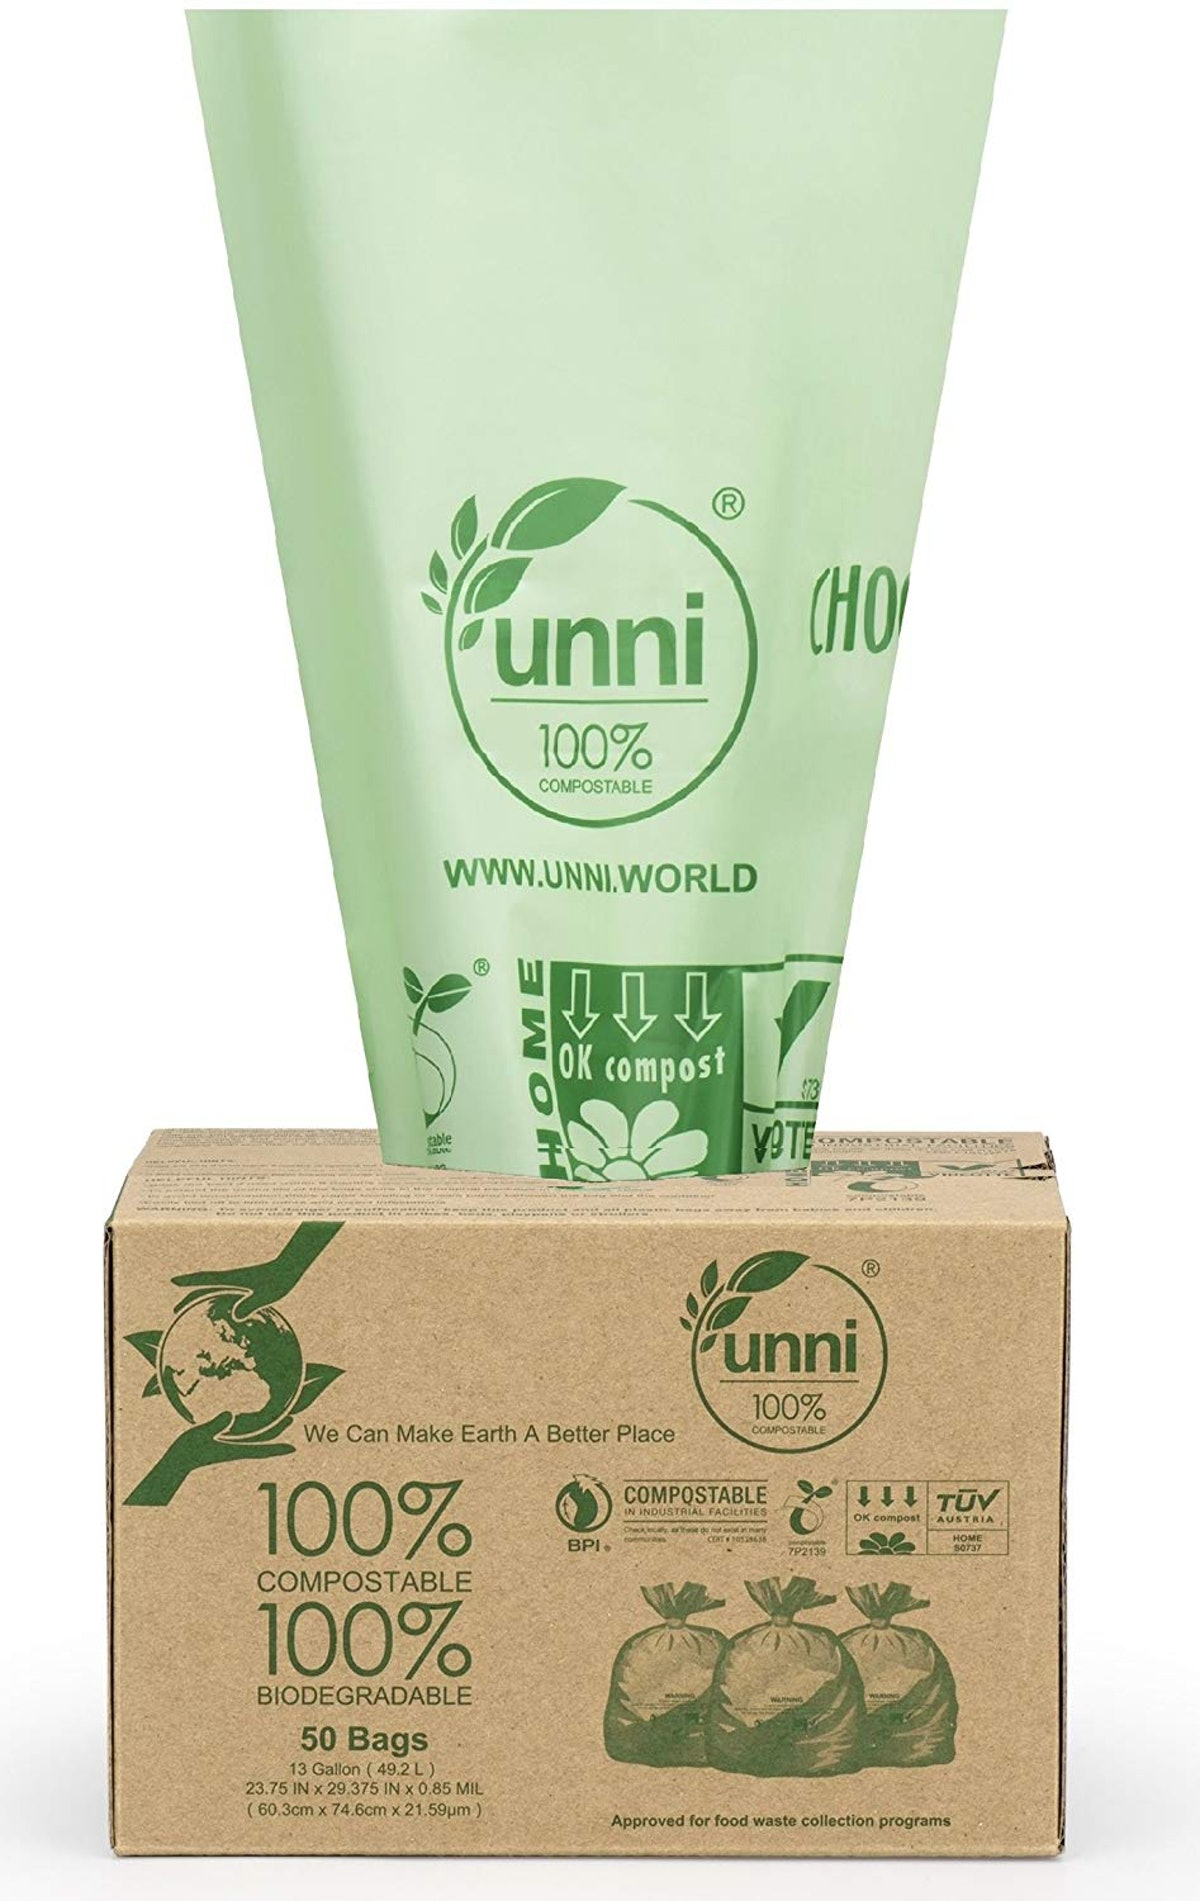 UNNI Compostable Bags